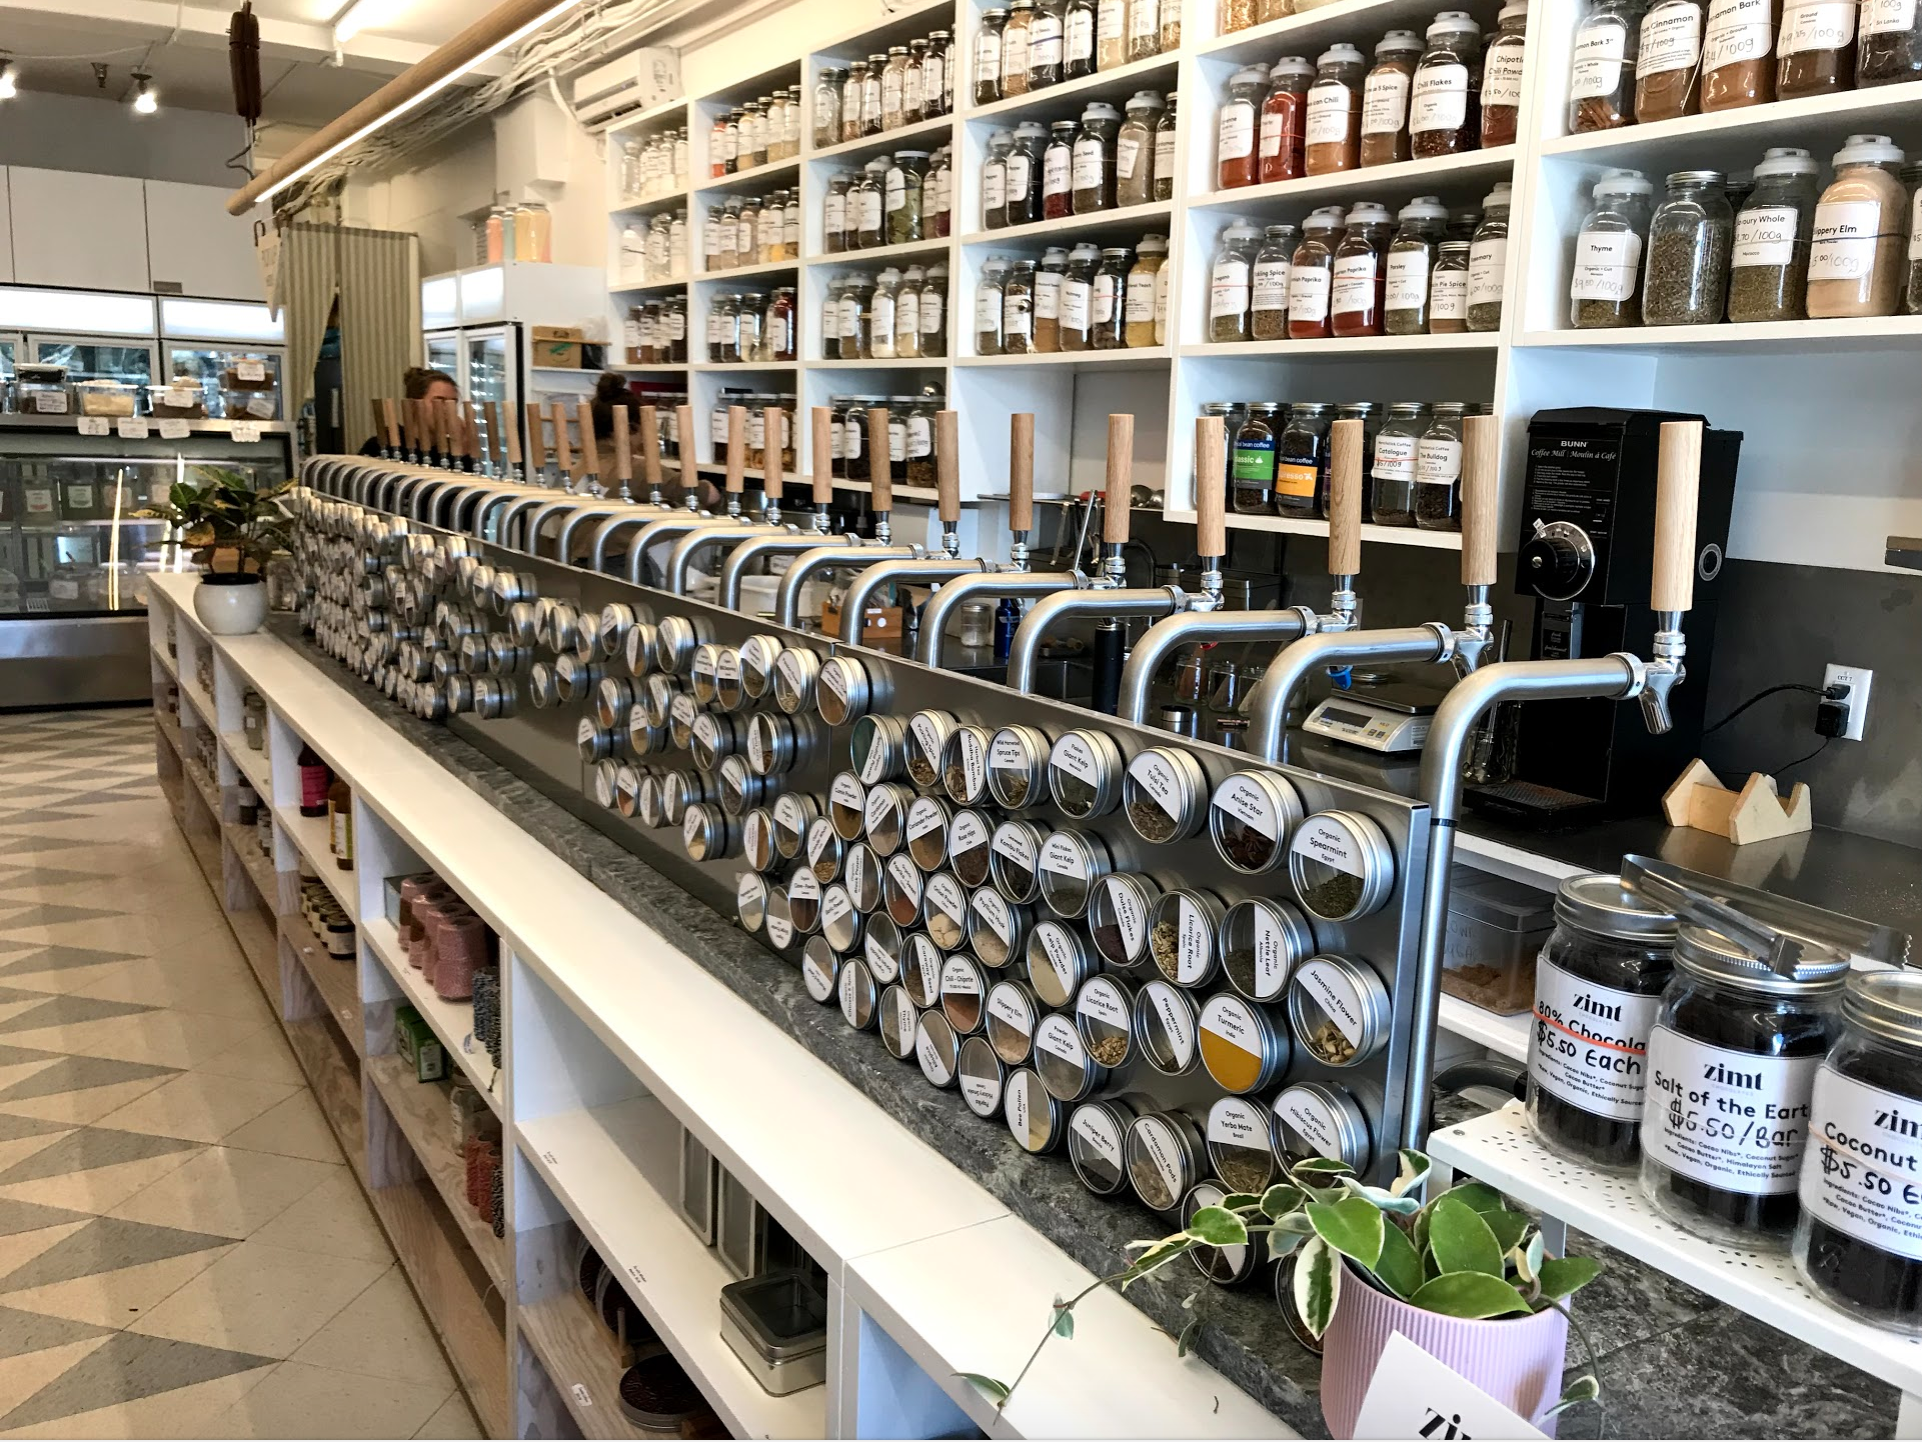 The Soap Dispensary and Kitchen Staples offers a wide array of natural products. No those are not beer taps.